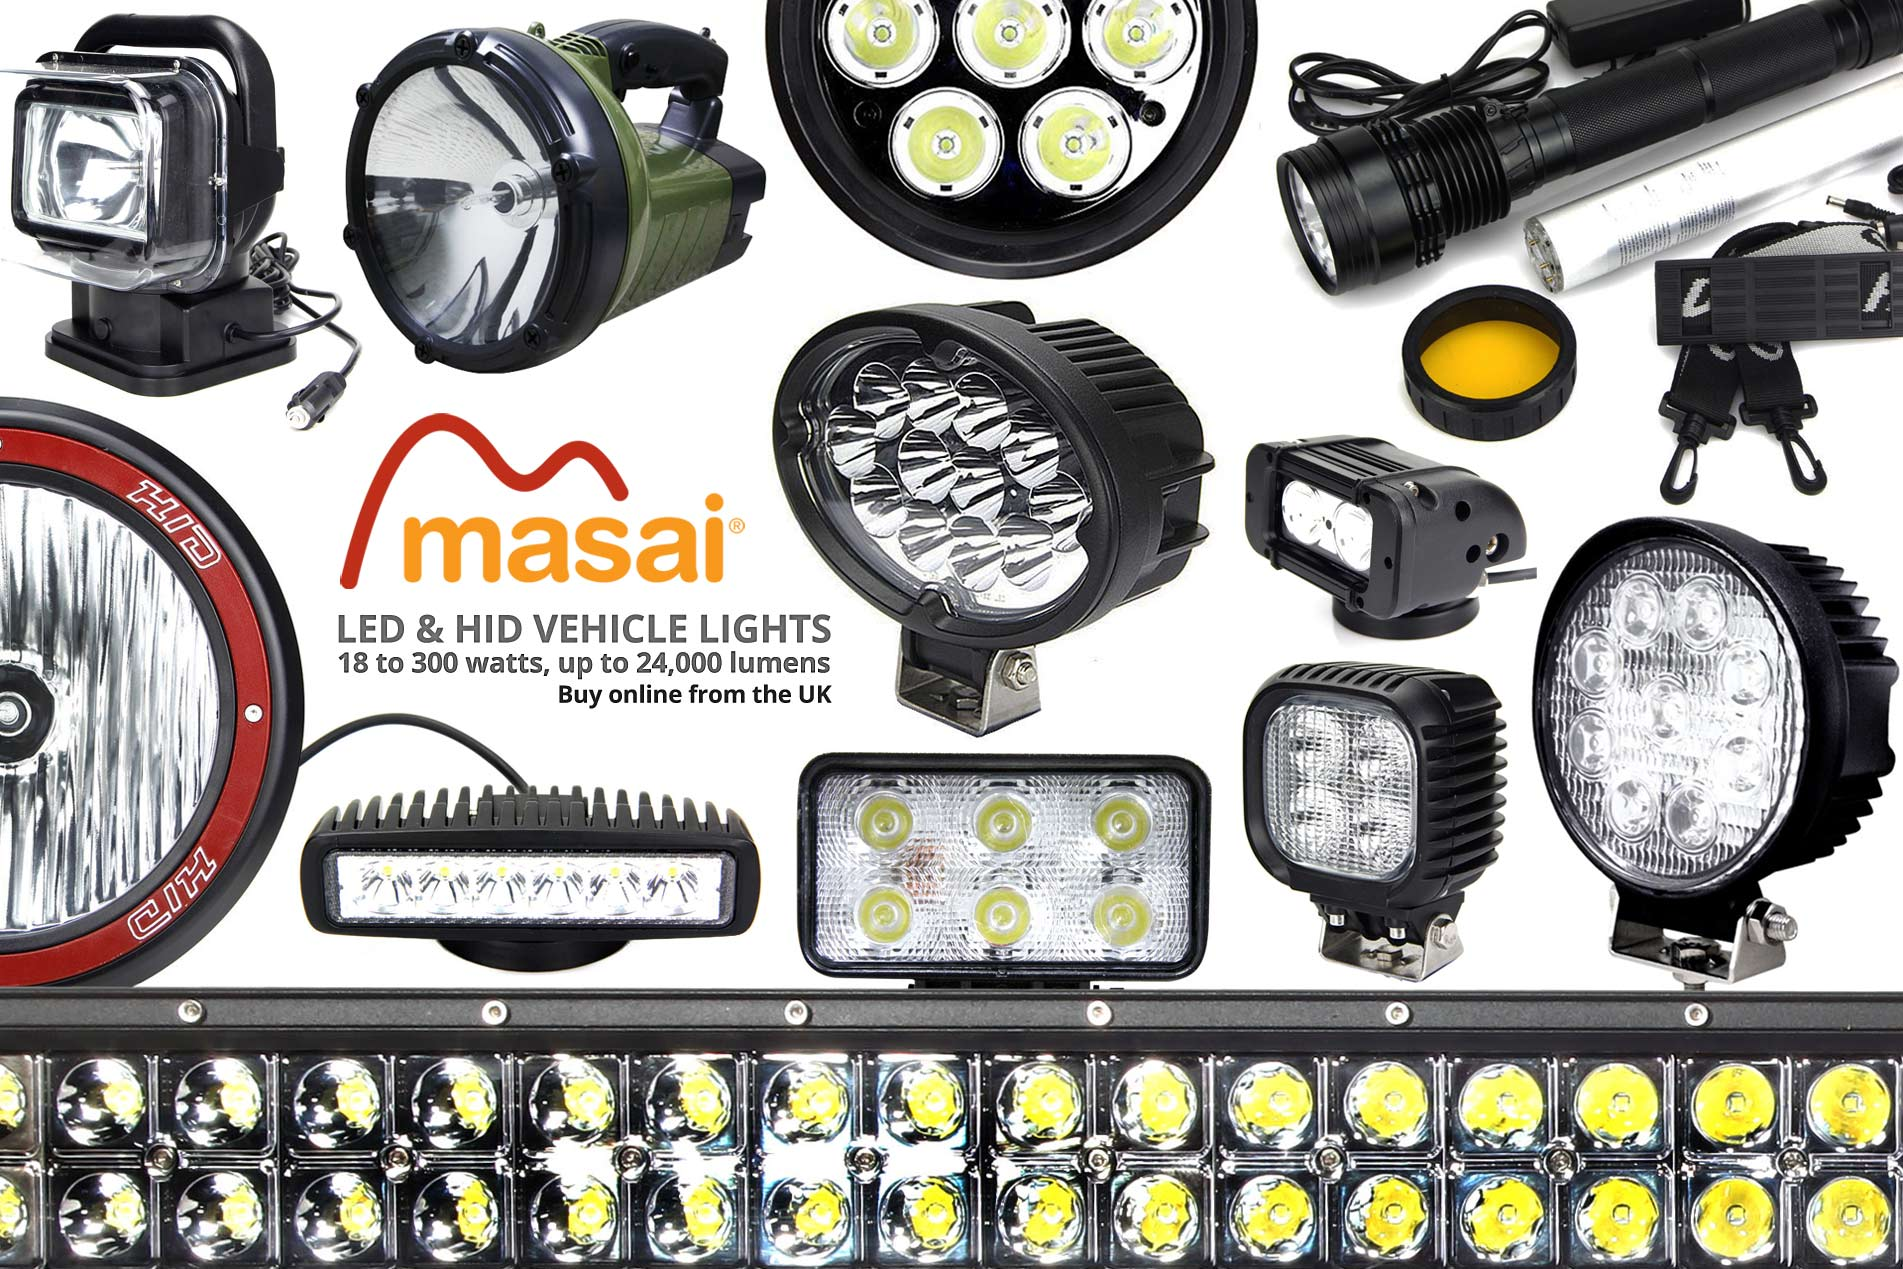 LED and HID vehicle lights